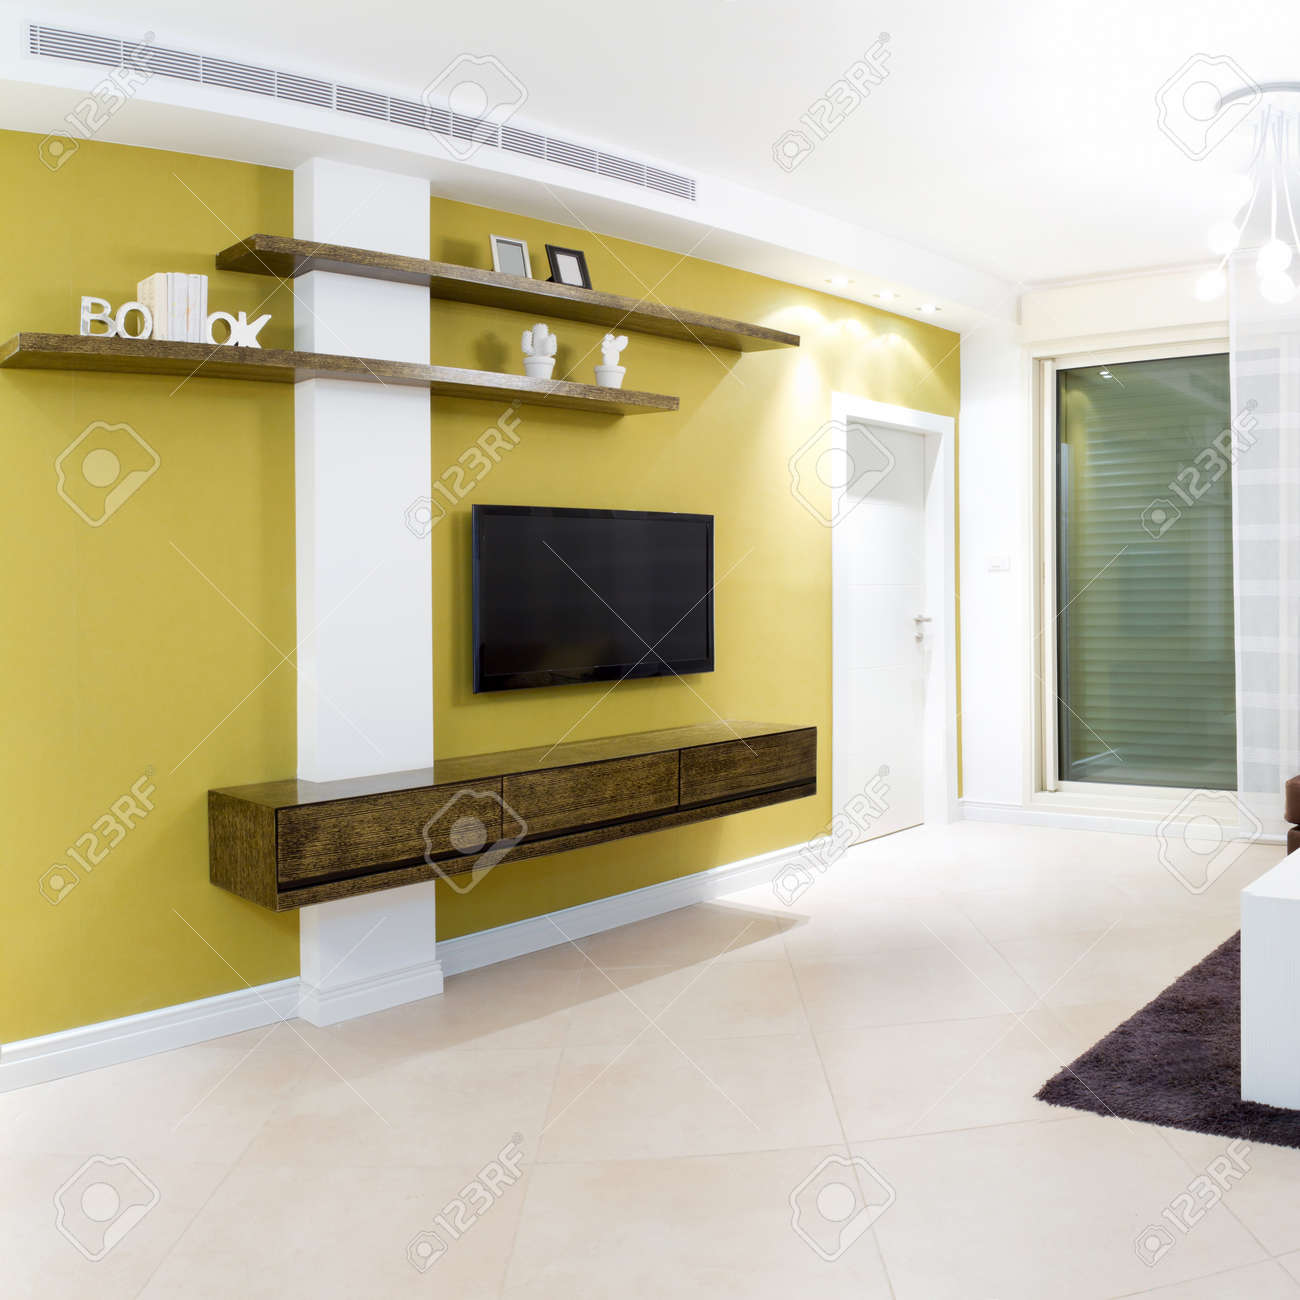 Superieur Interior Design In A New House Stock Photo   13985587